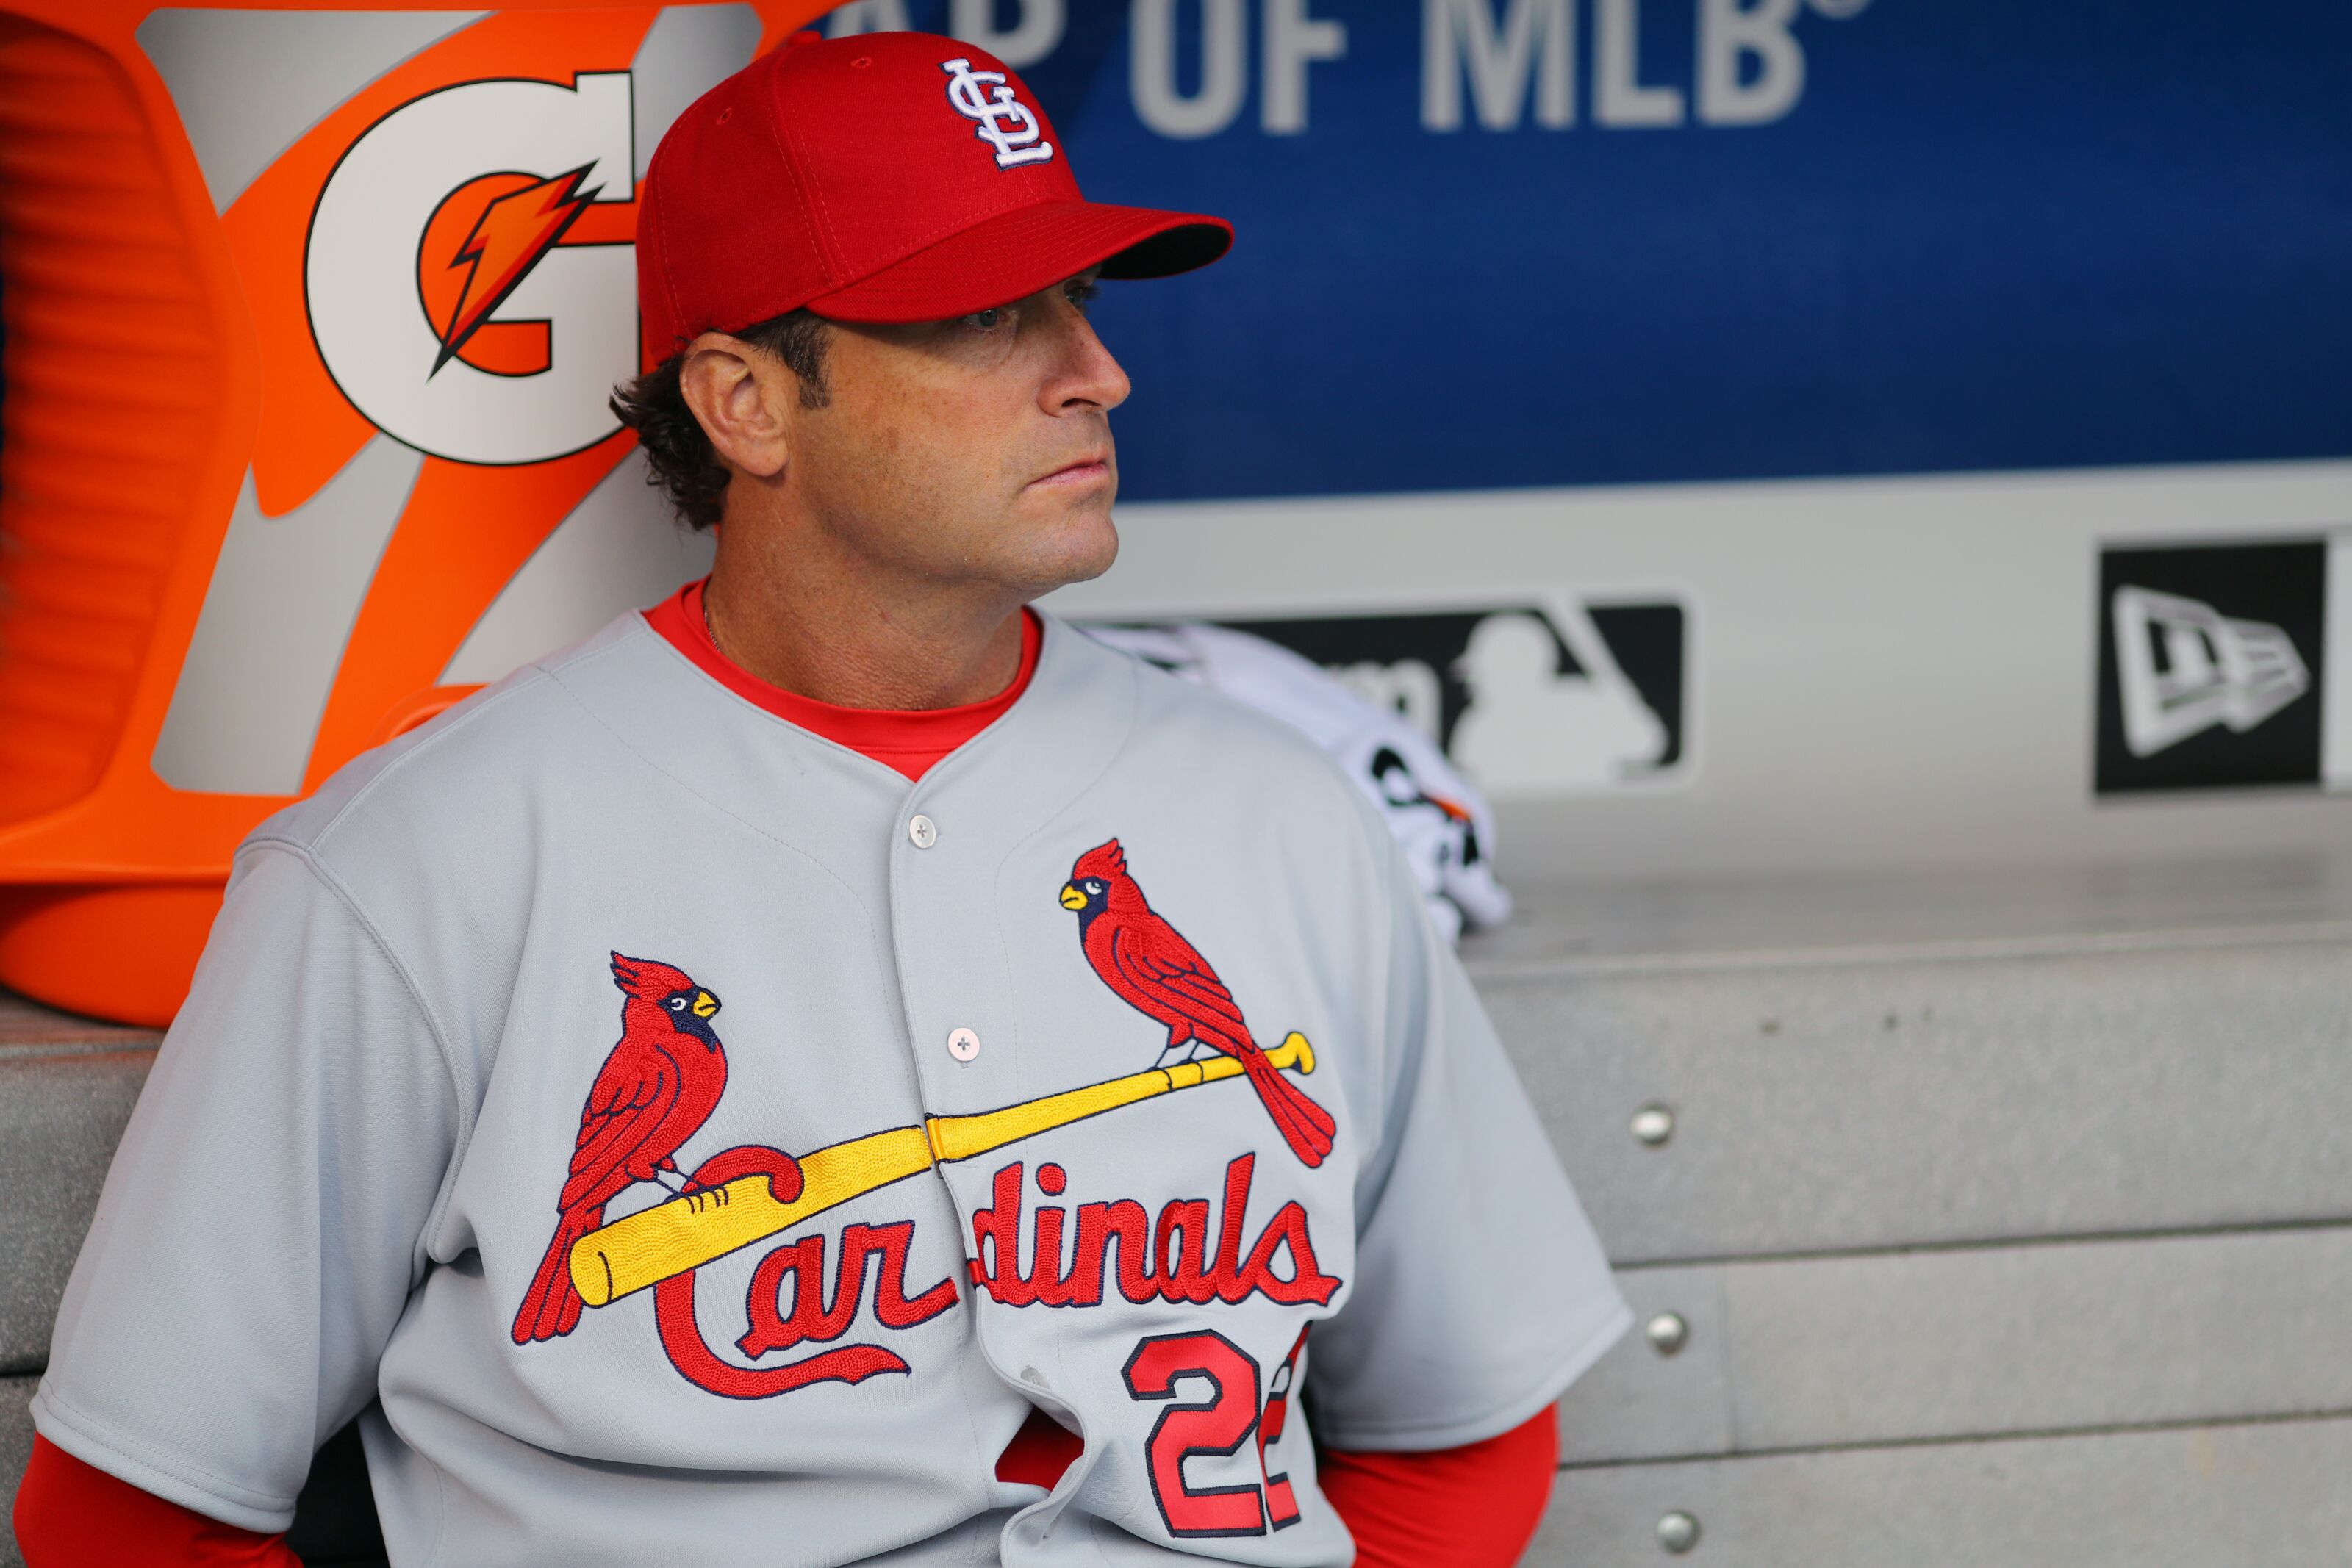 Kansas City Royals: Mike Matheny can't be replacement for Ned Yost